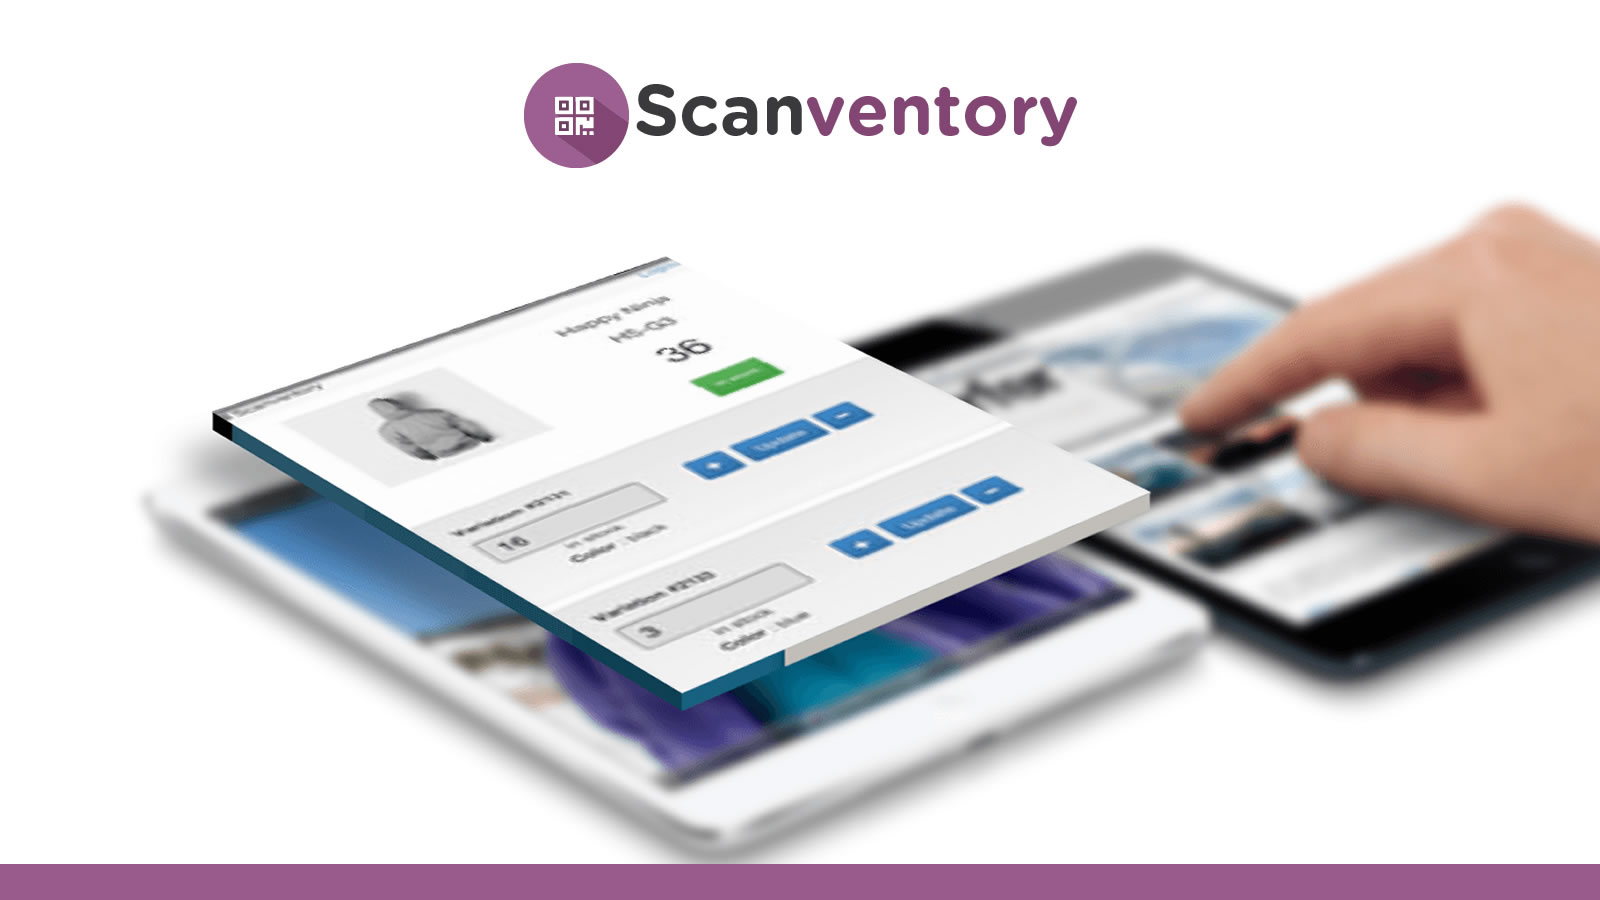 Save time! Increase or decrease stock immediately after scanning